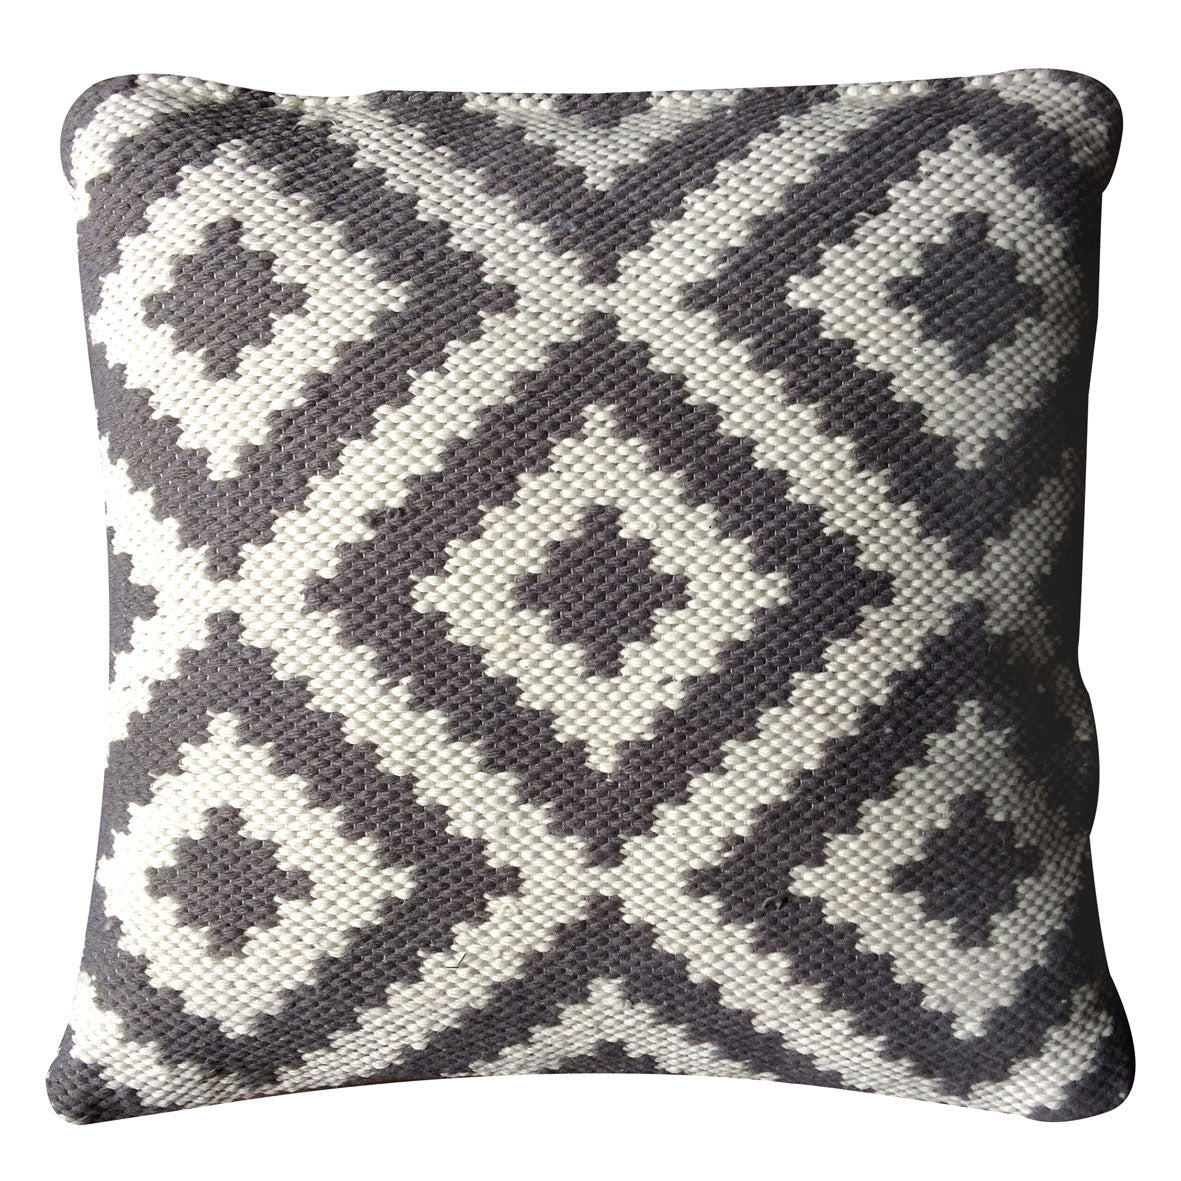 Ava Indoor Outdoor Cushion (DOVE GREY/Light Cream)